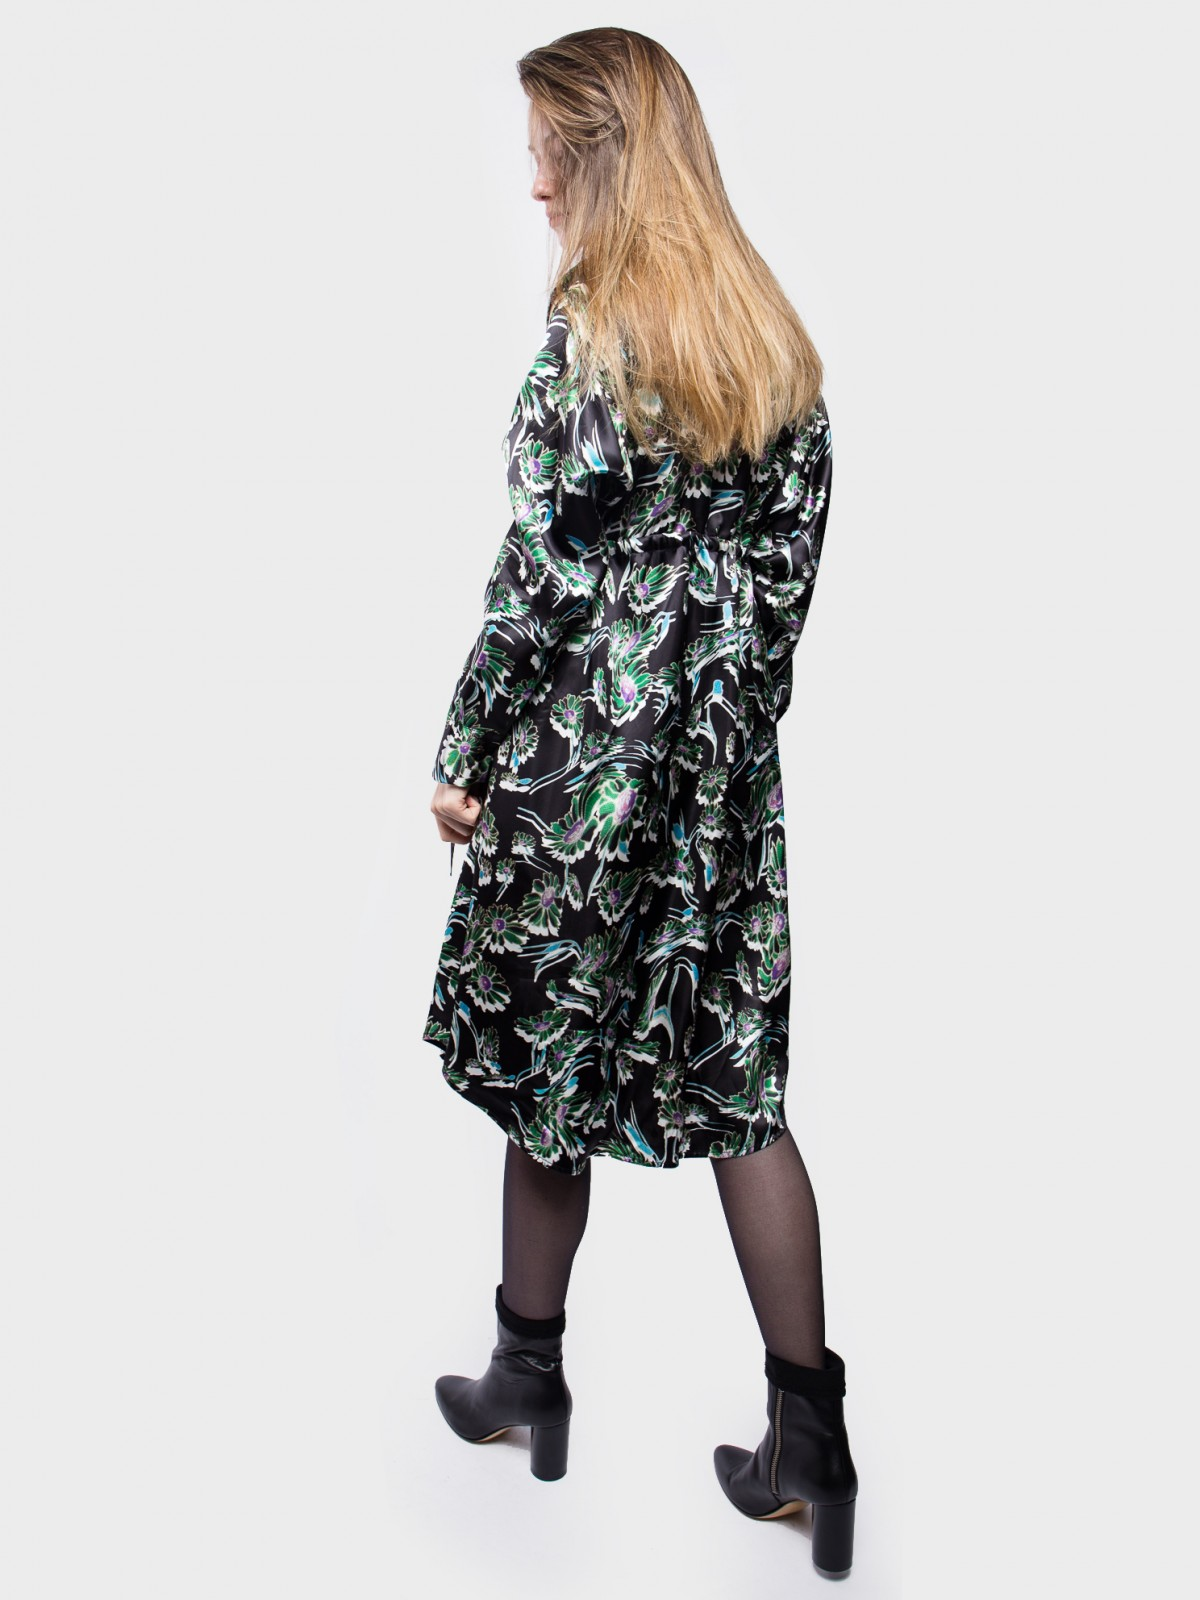 MM6 Maison Margiela Black Chemisier in Floral Print